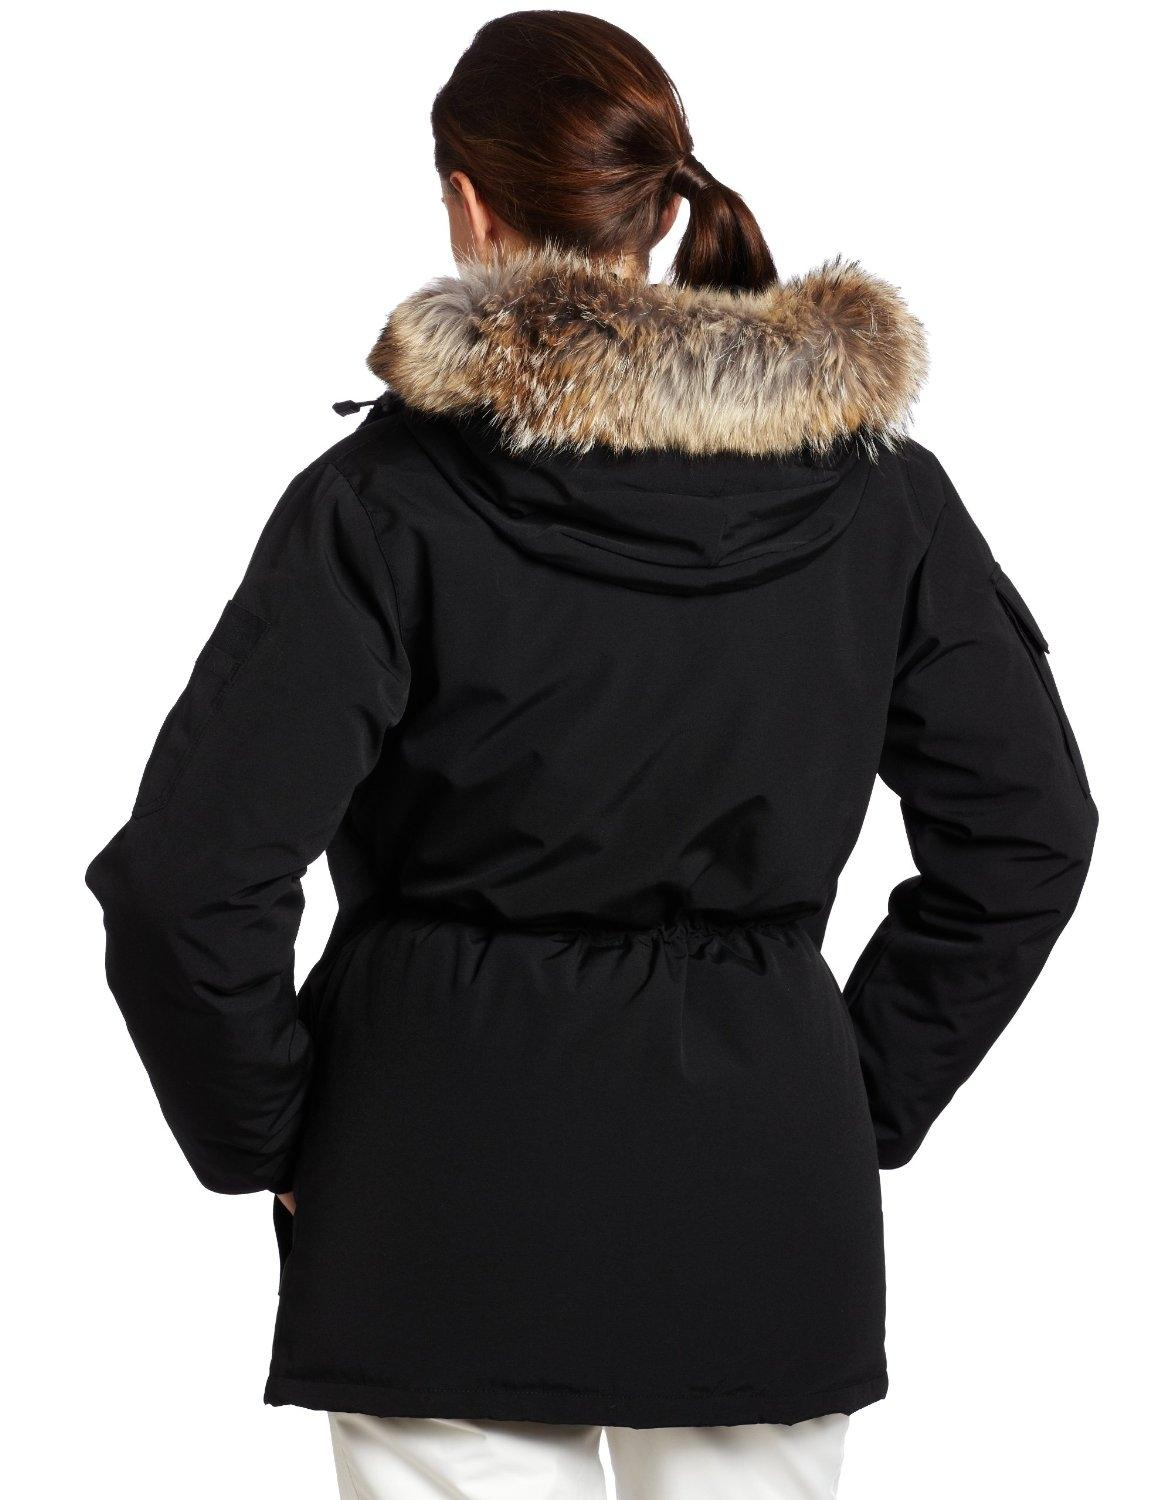 c26231d1 ... australia canada goose black expedition down parka womens puffy ski coat  size 8 m tradesy b20c9 ...